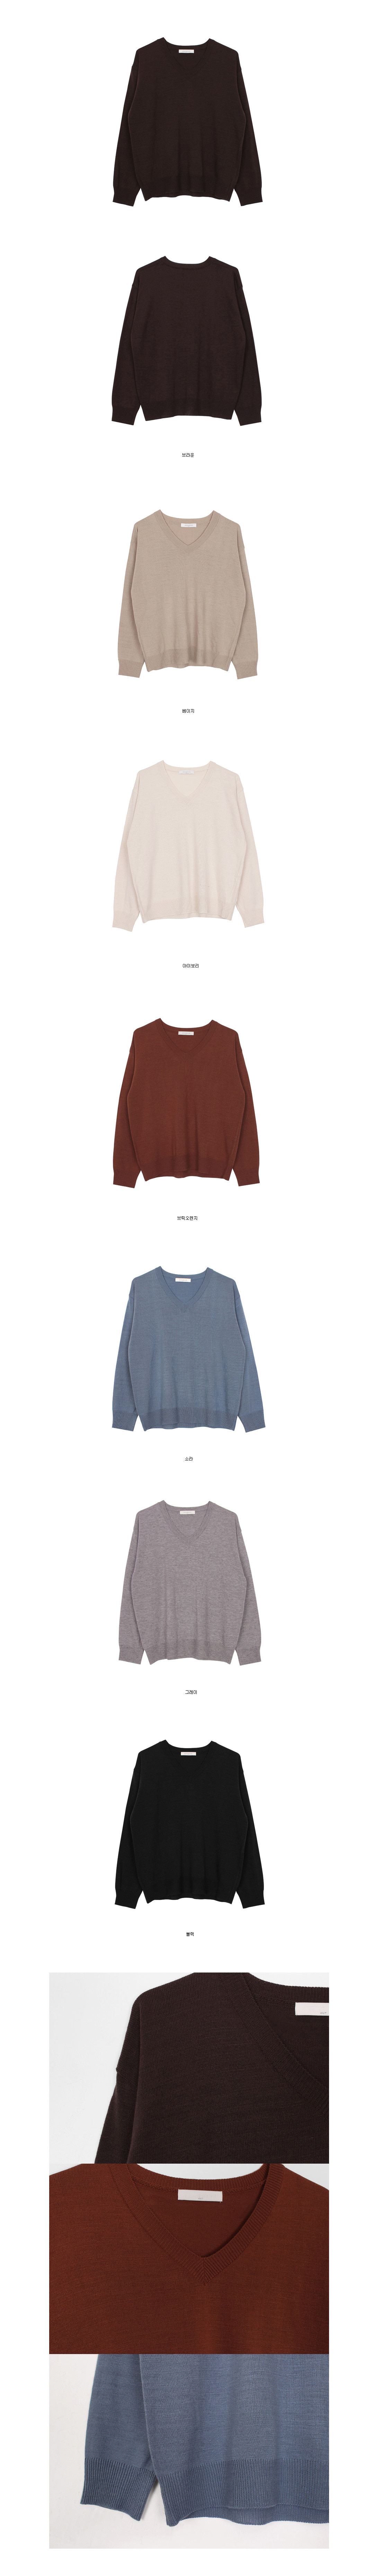 Autumn v-neck knit (7color)